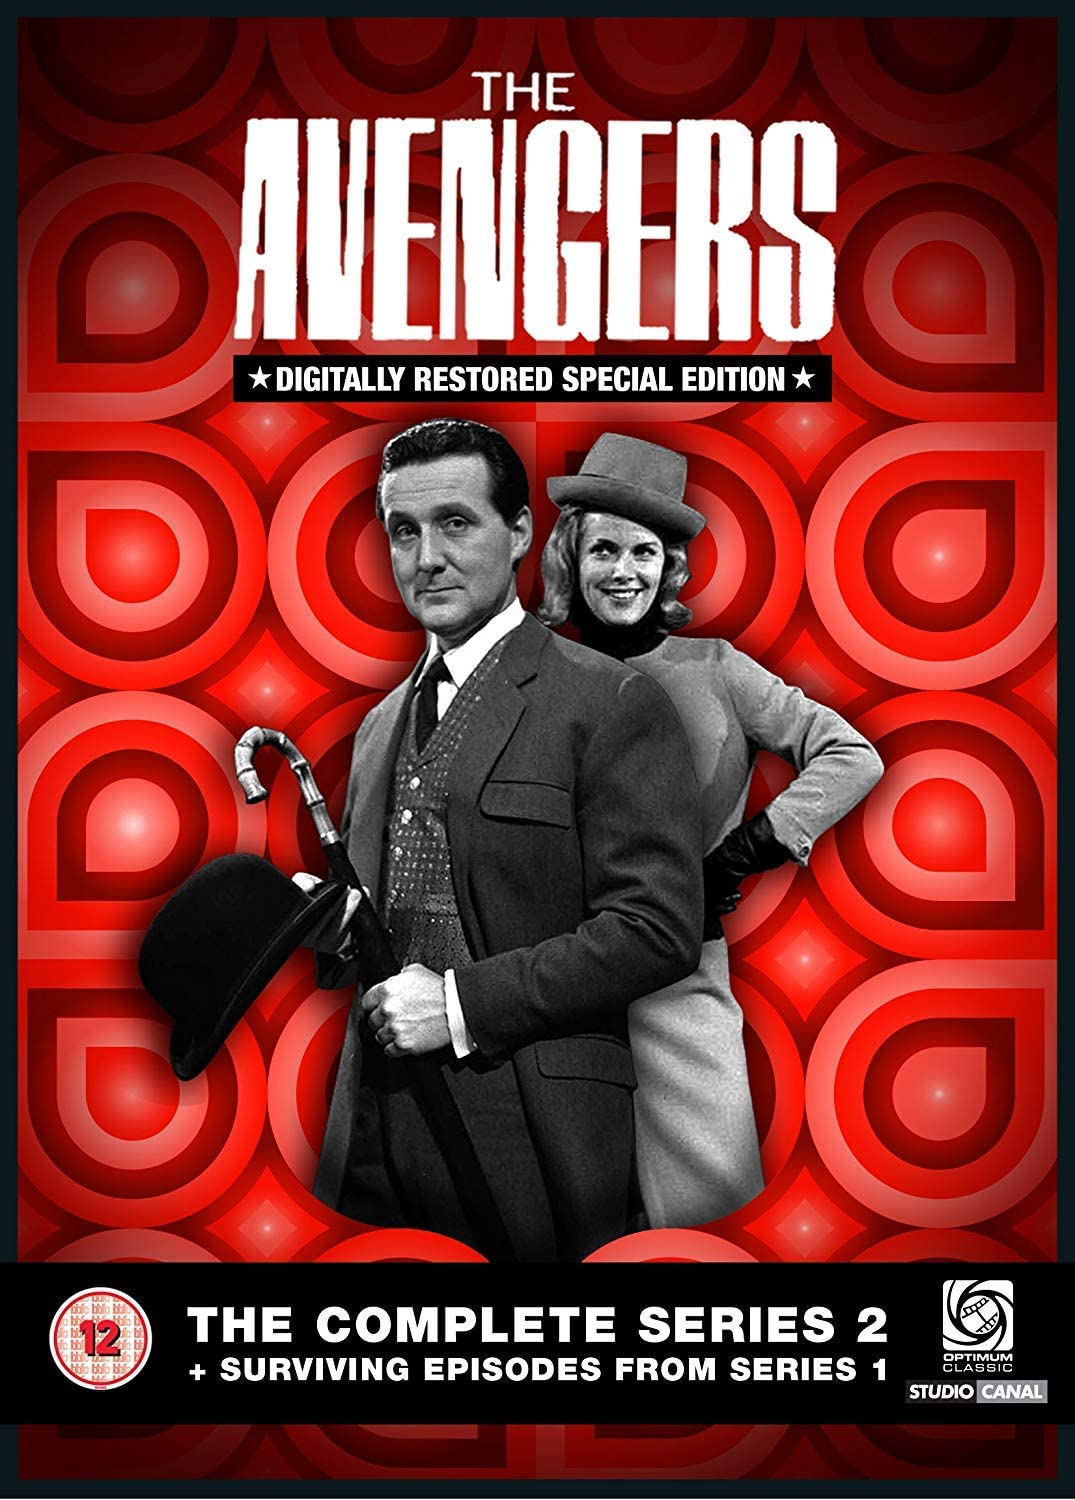 THE AVENGERS COMPLETE COLLECTION SERIES 2 PROOF PROMO CARD DEALER PROMO GG1